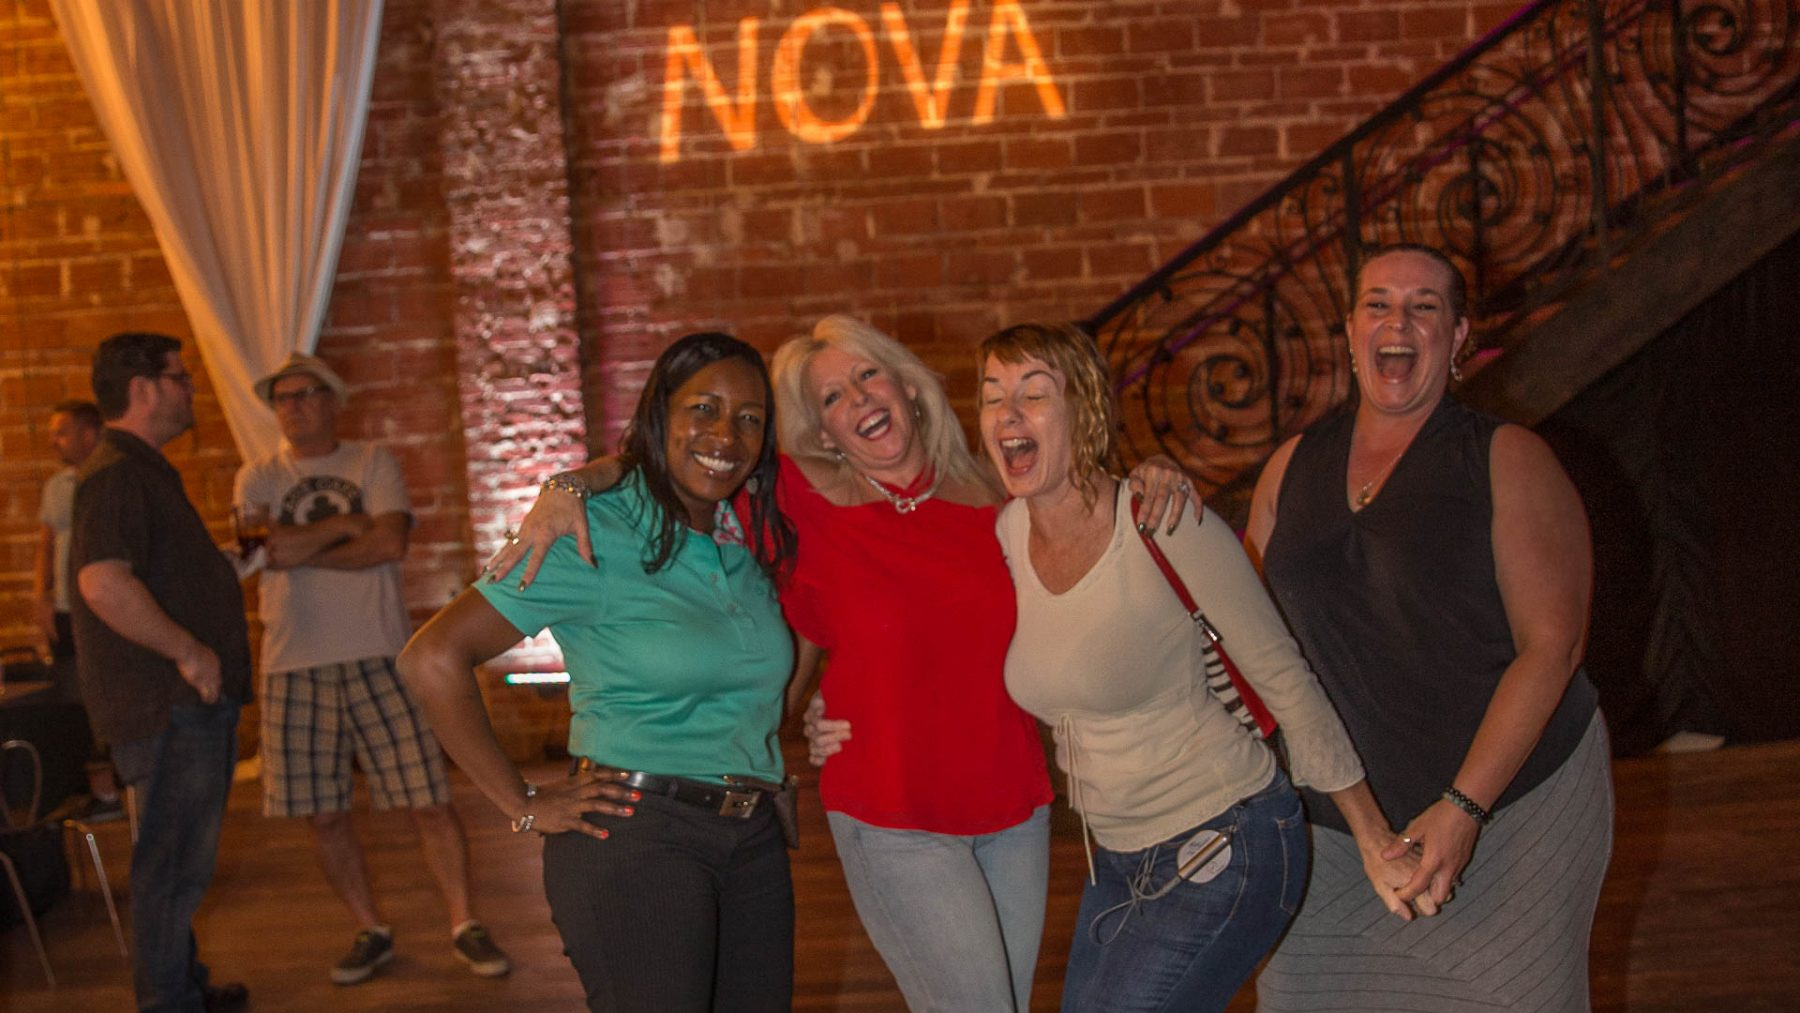 xpress yourself at our weekly entrepreneur social club at historic downtown St. Pete Florida venue NOVA 535